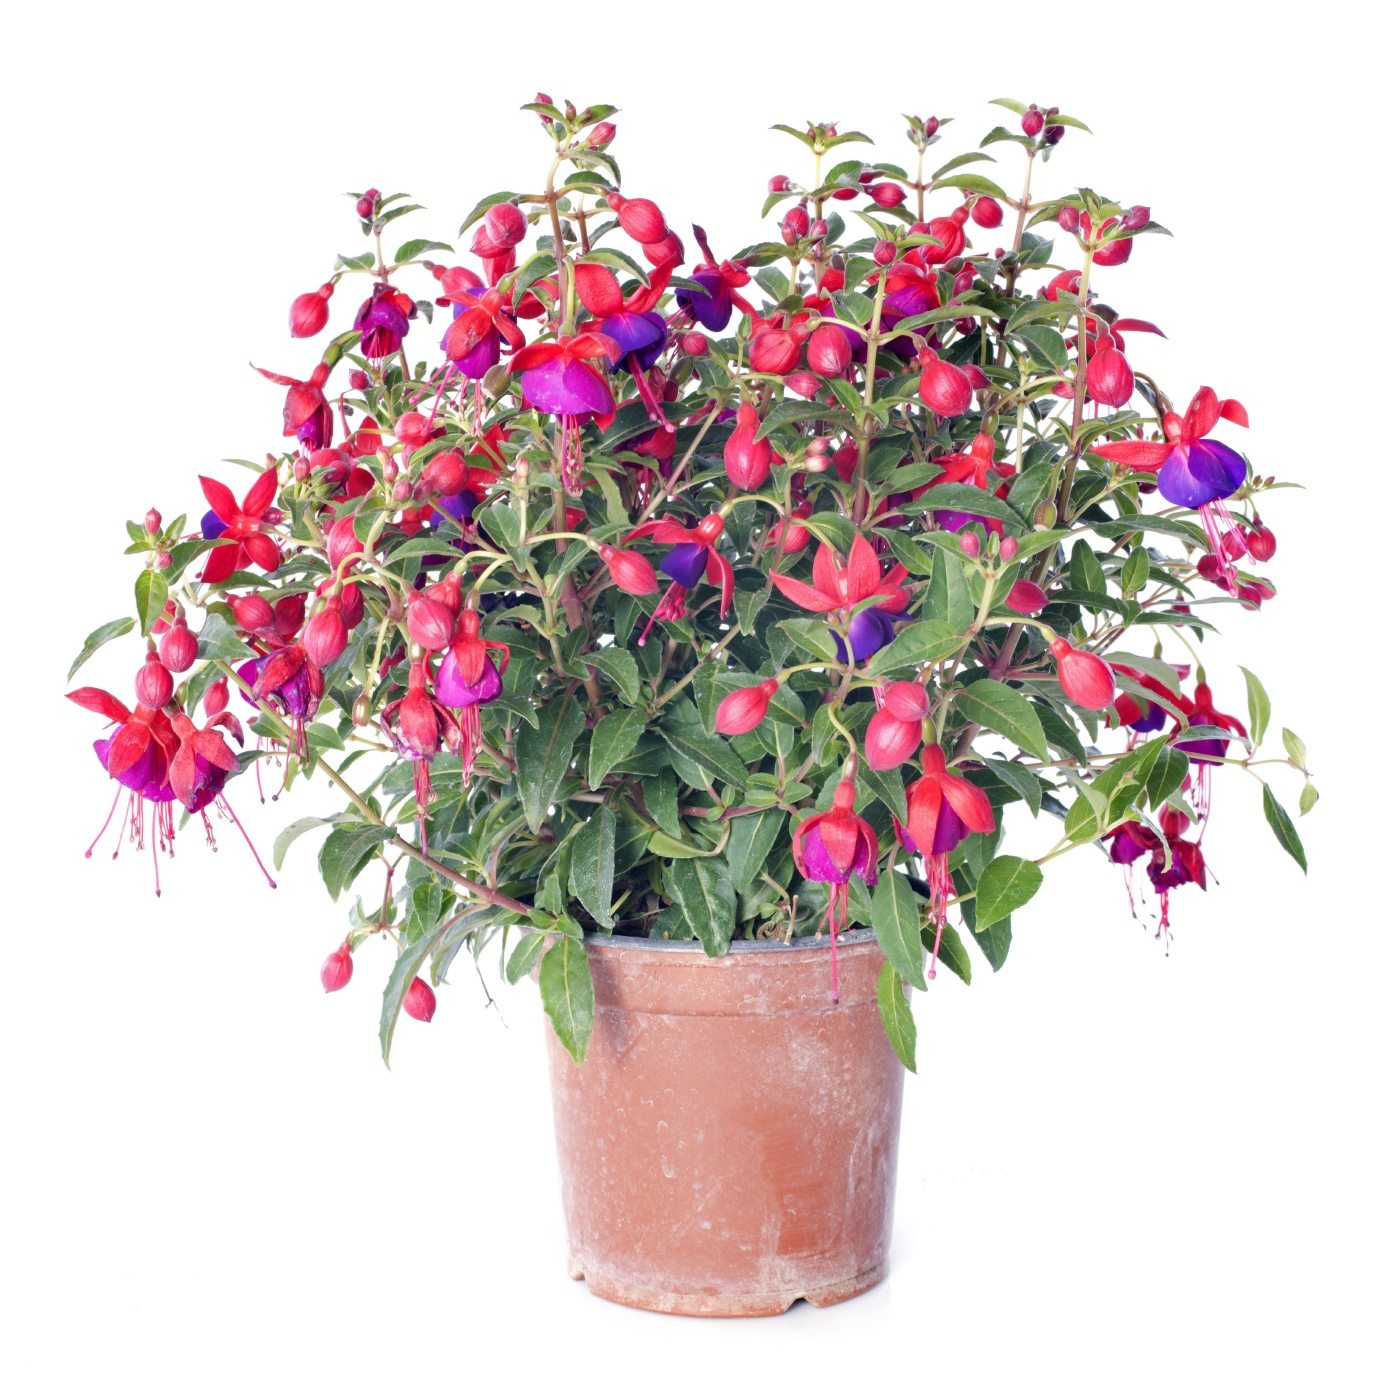 How To Grow Fuchsias Indoors – Learn About Fuchsia Plant Care Indoors